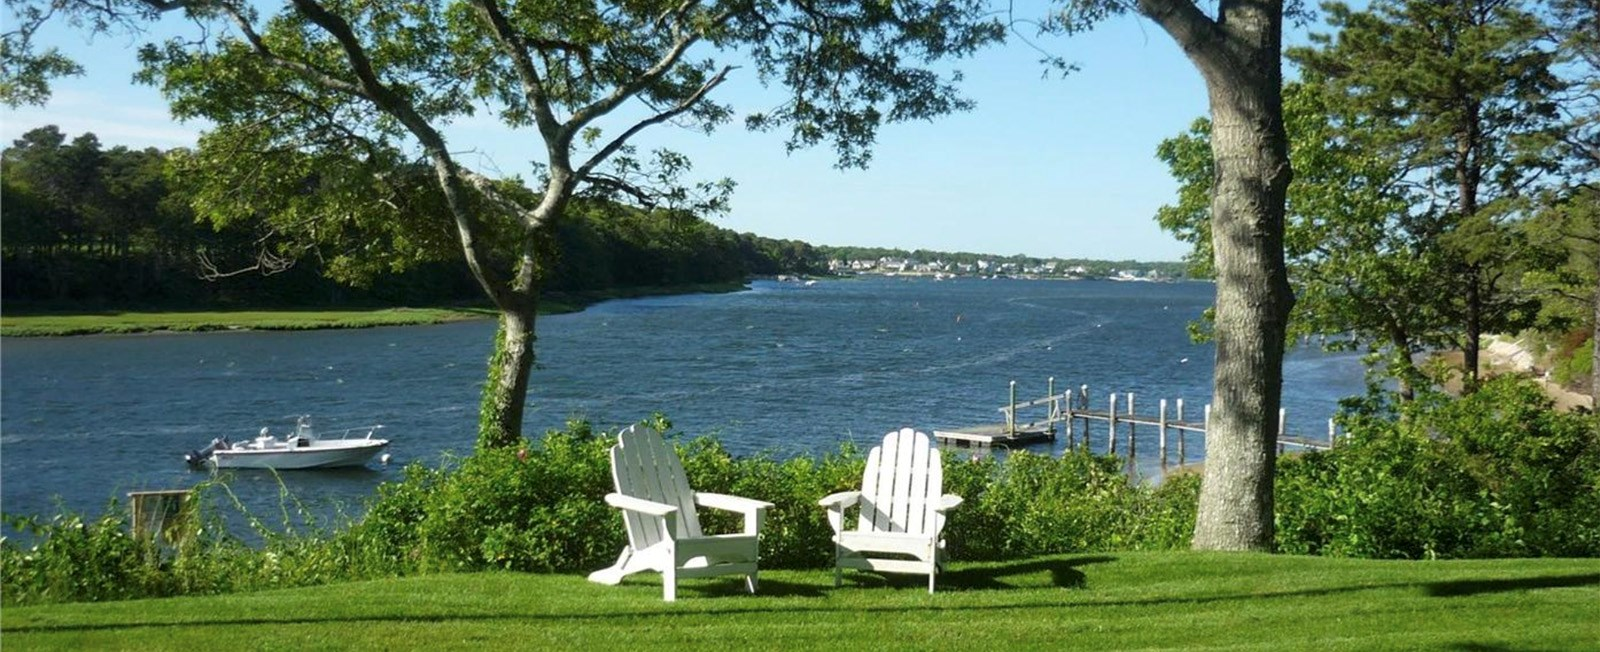 This year, surprise dad with a weekend getaway to the Cape and Islands! There is still availability—and even some great deals!